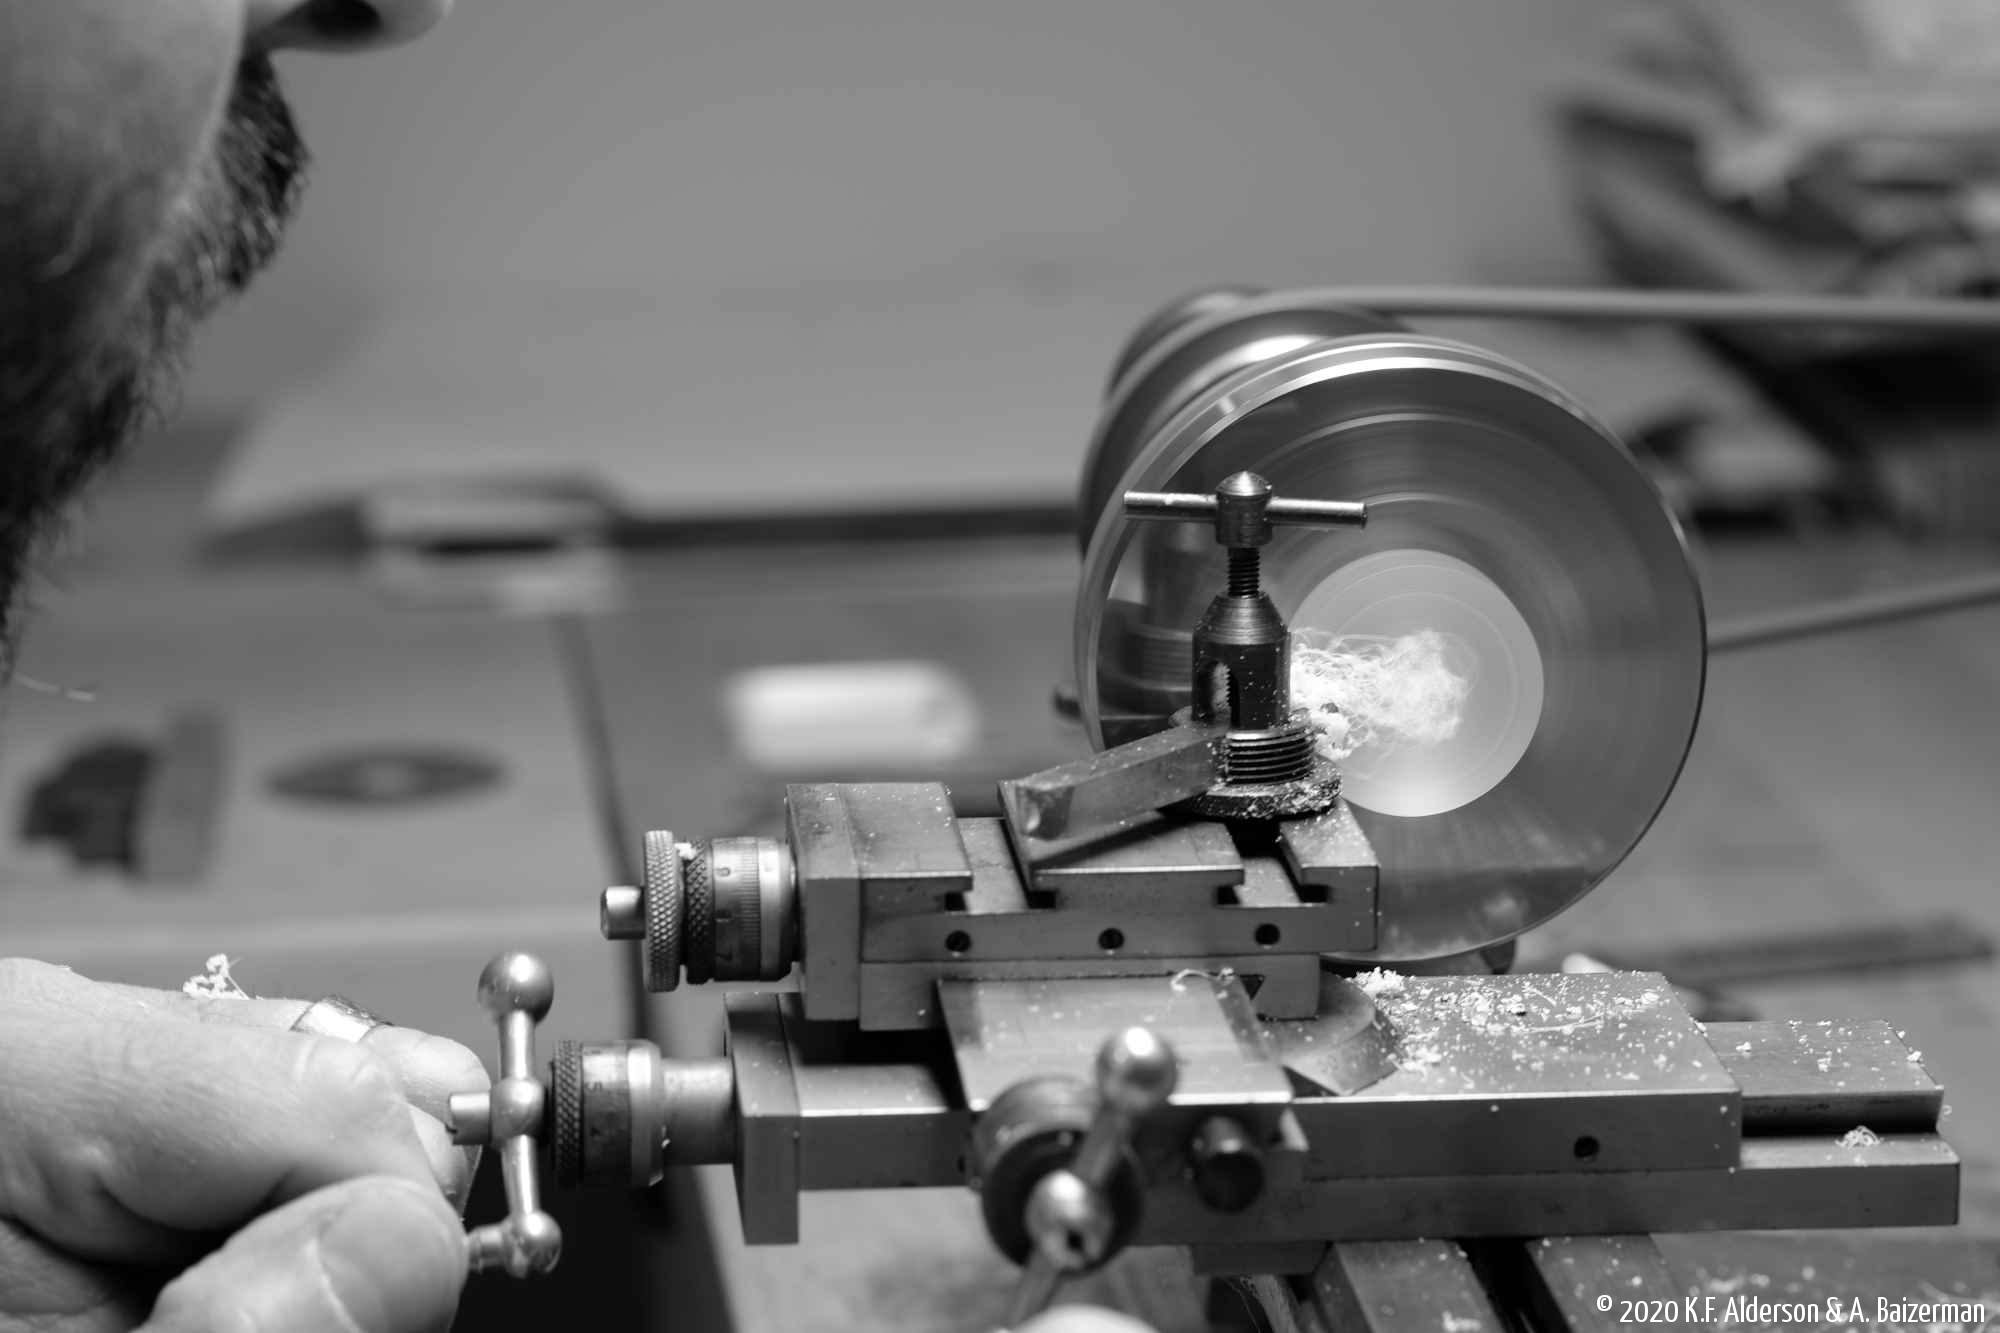 Watchmaker making part on lathe